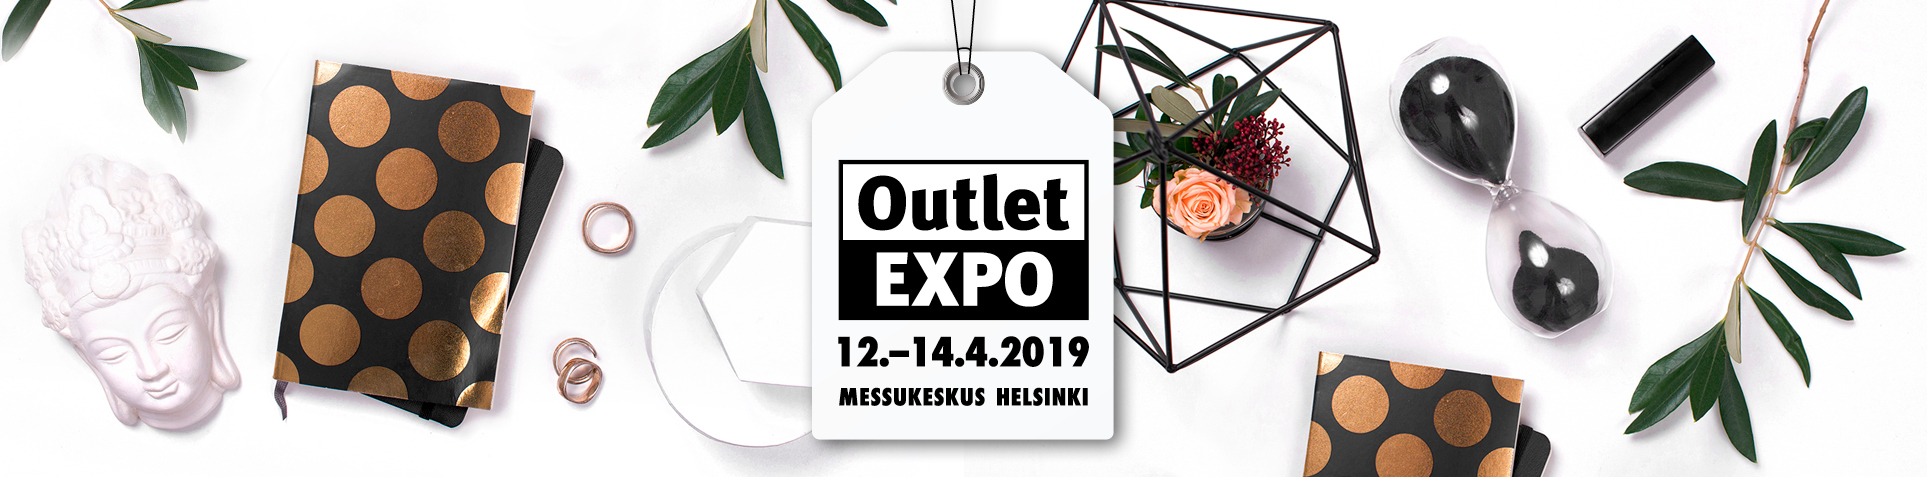 OutletExpo 2019